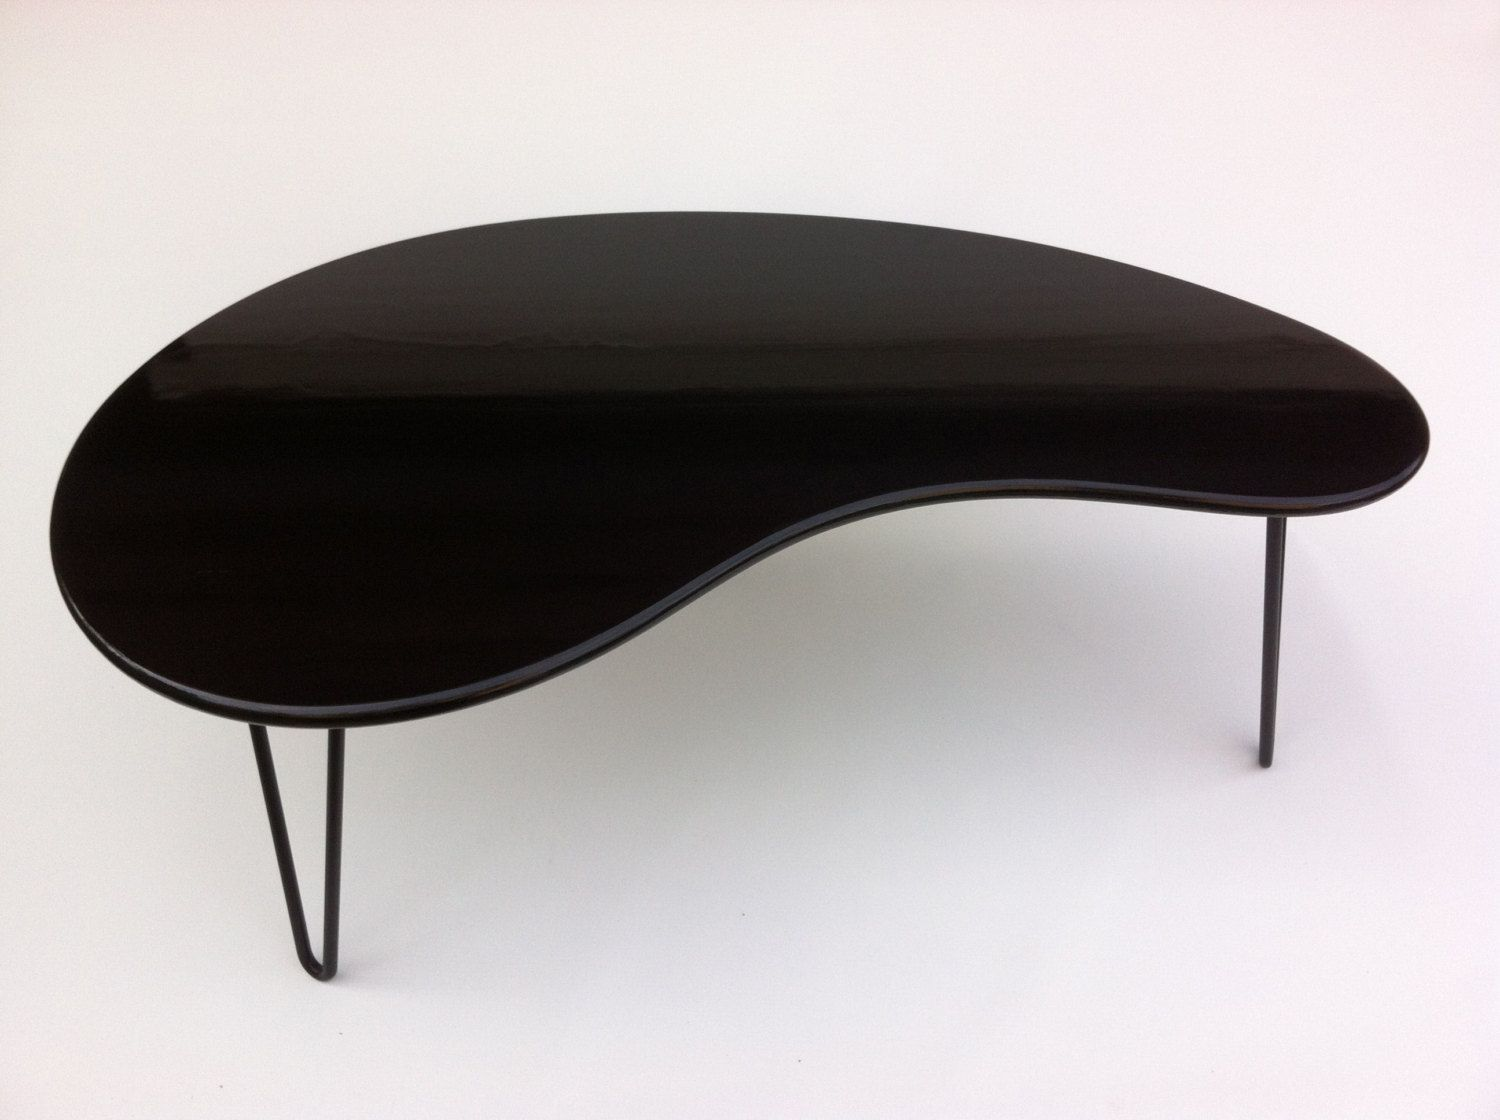 Mid Century Black Coffee Table Black Mid Century Modern Coffee Table Kidney Bean Shaped